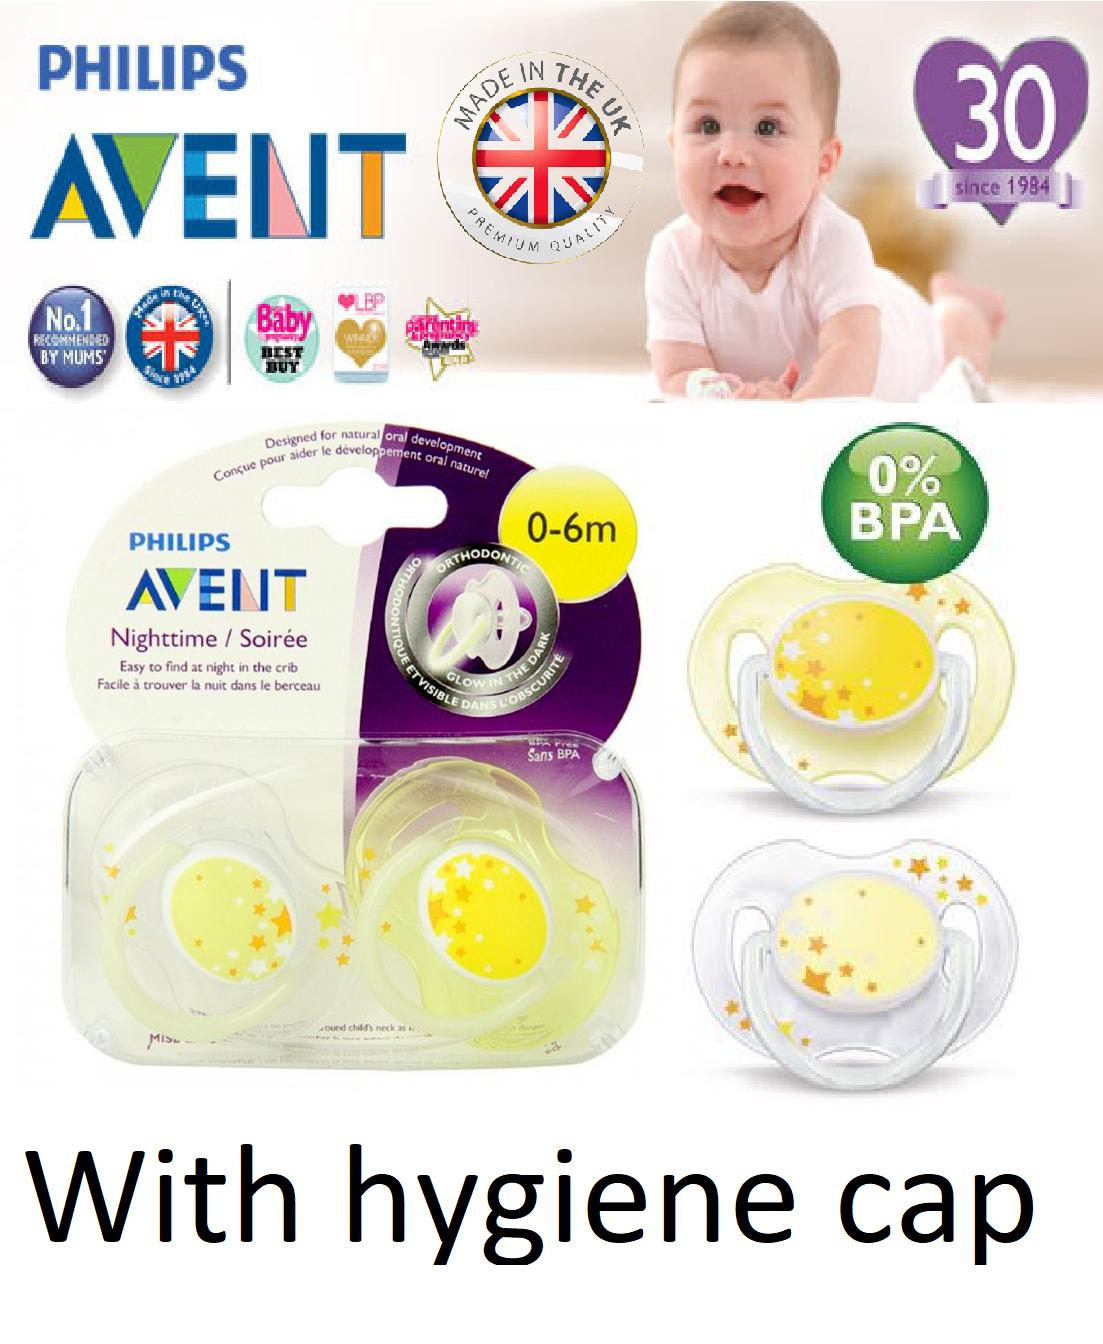 Pacifiers For Sale Baby Online Brands Prices Reviews Philips Avent 2 Pack Orthodentic Pacifier Soother 6 18m Pink Glow In The Dark Dummy Night Time Yellow Stars